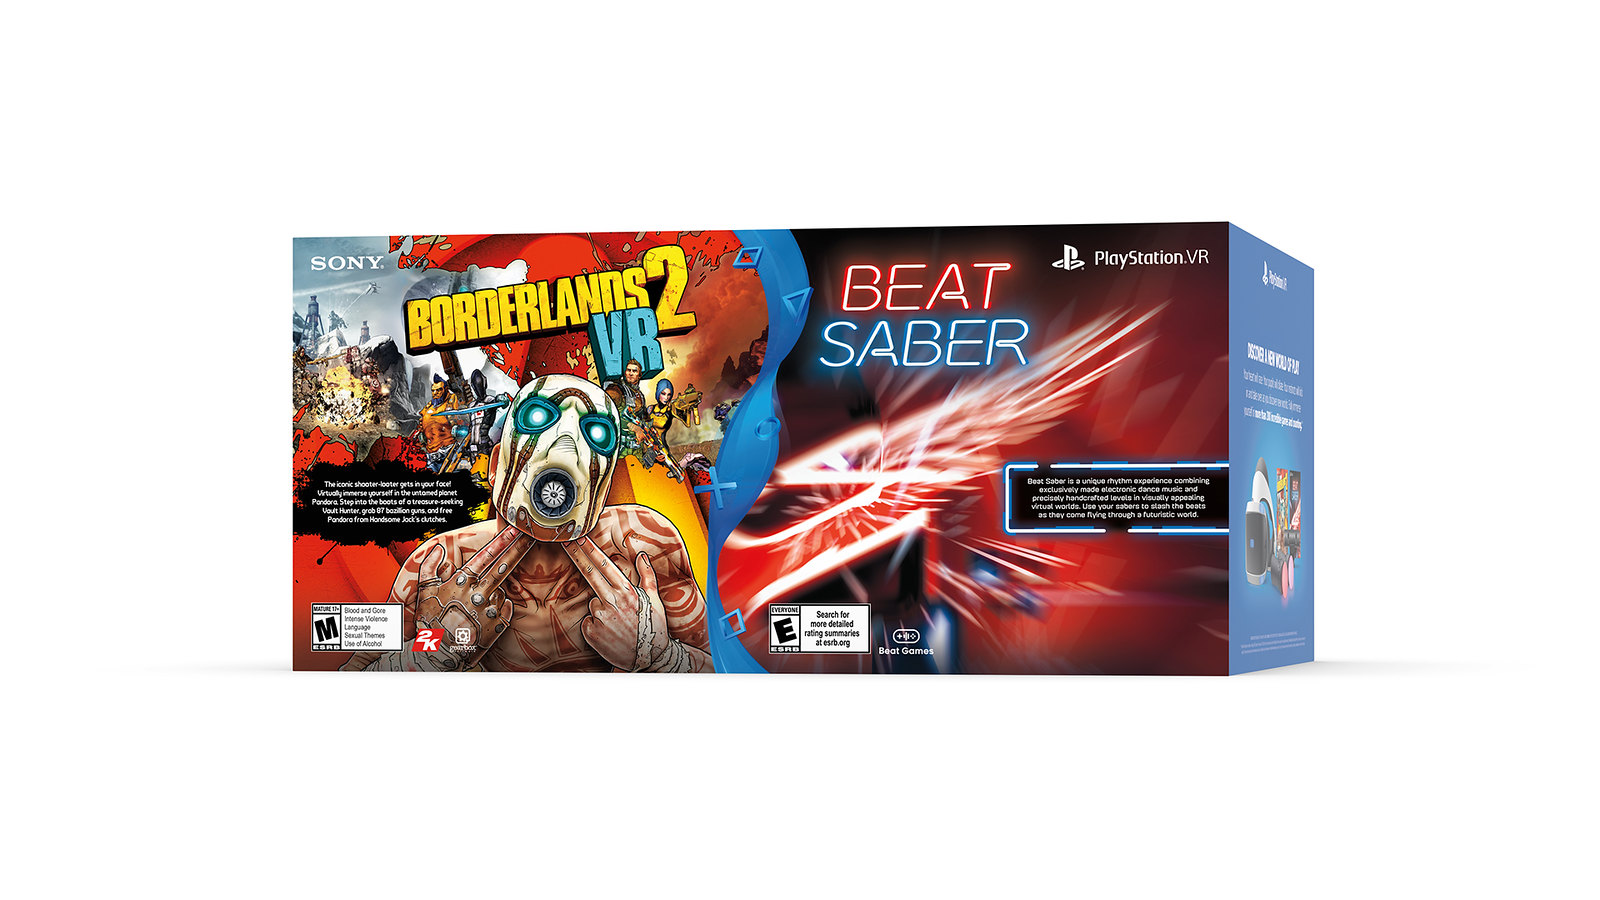 PS VR Borderlands 2 & Beat Saber Bundle